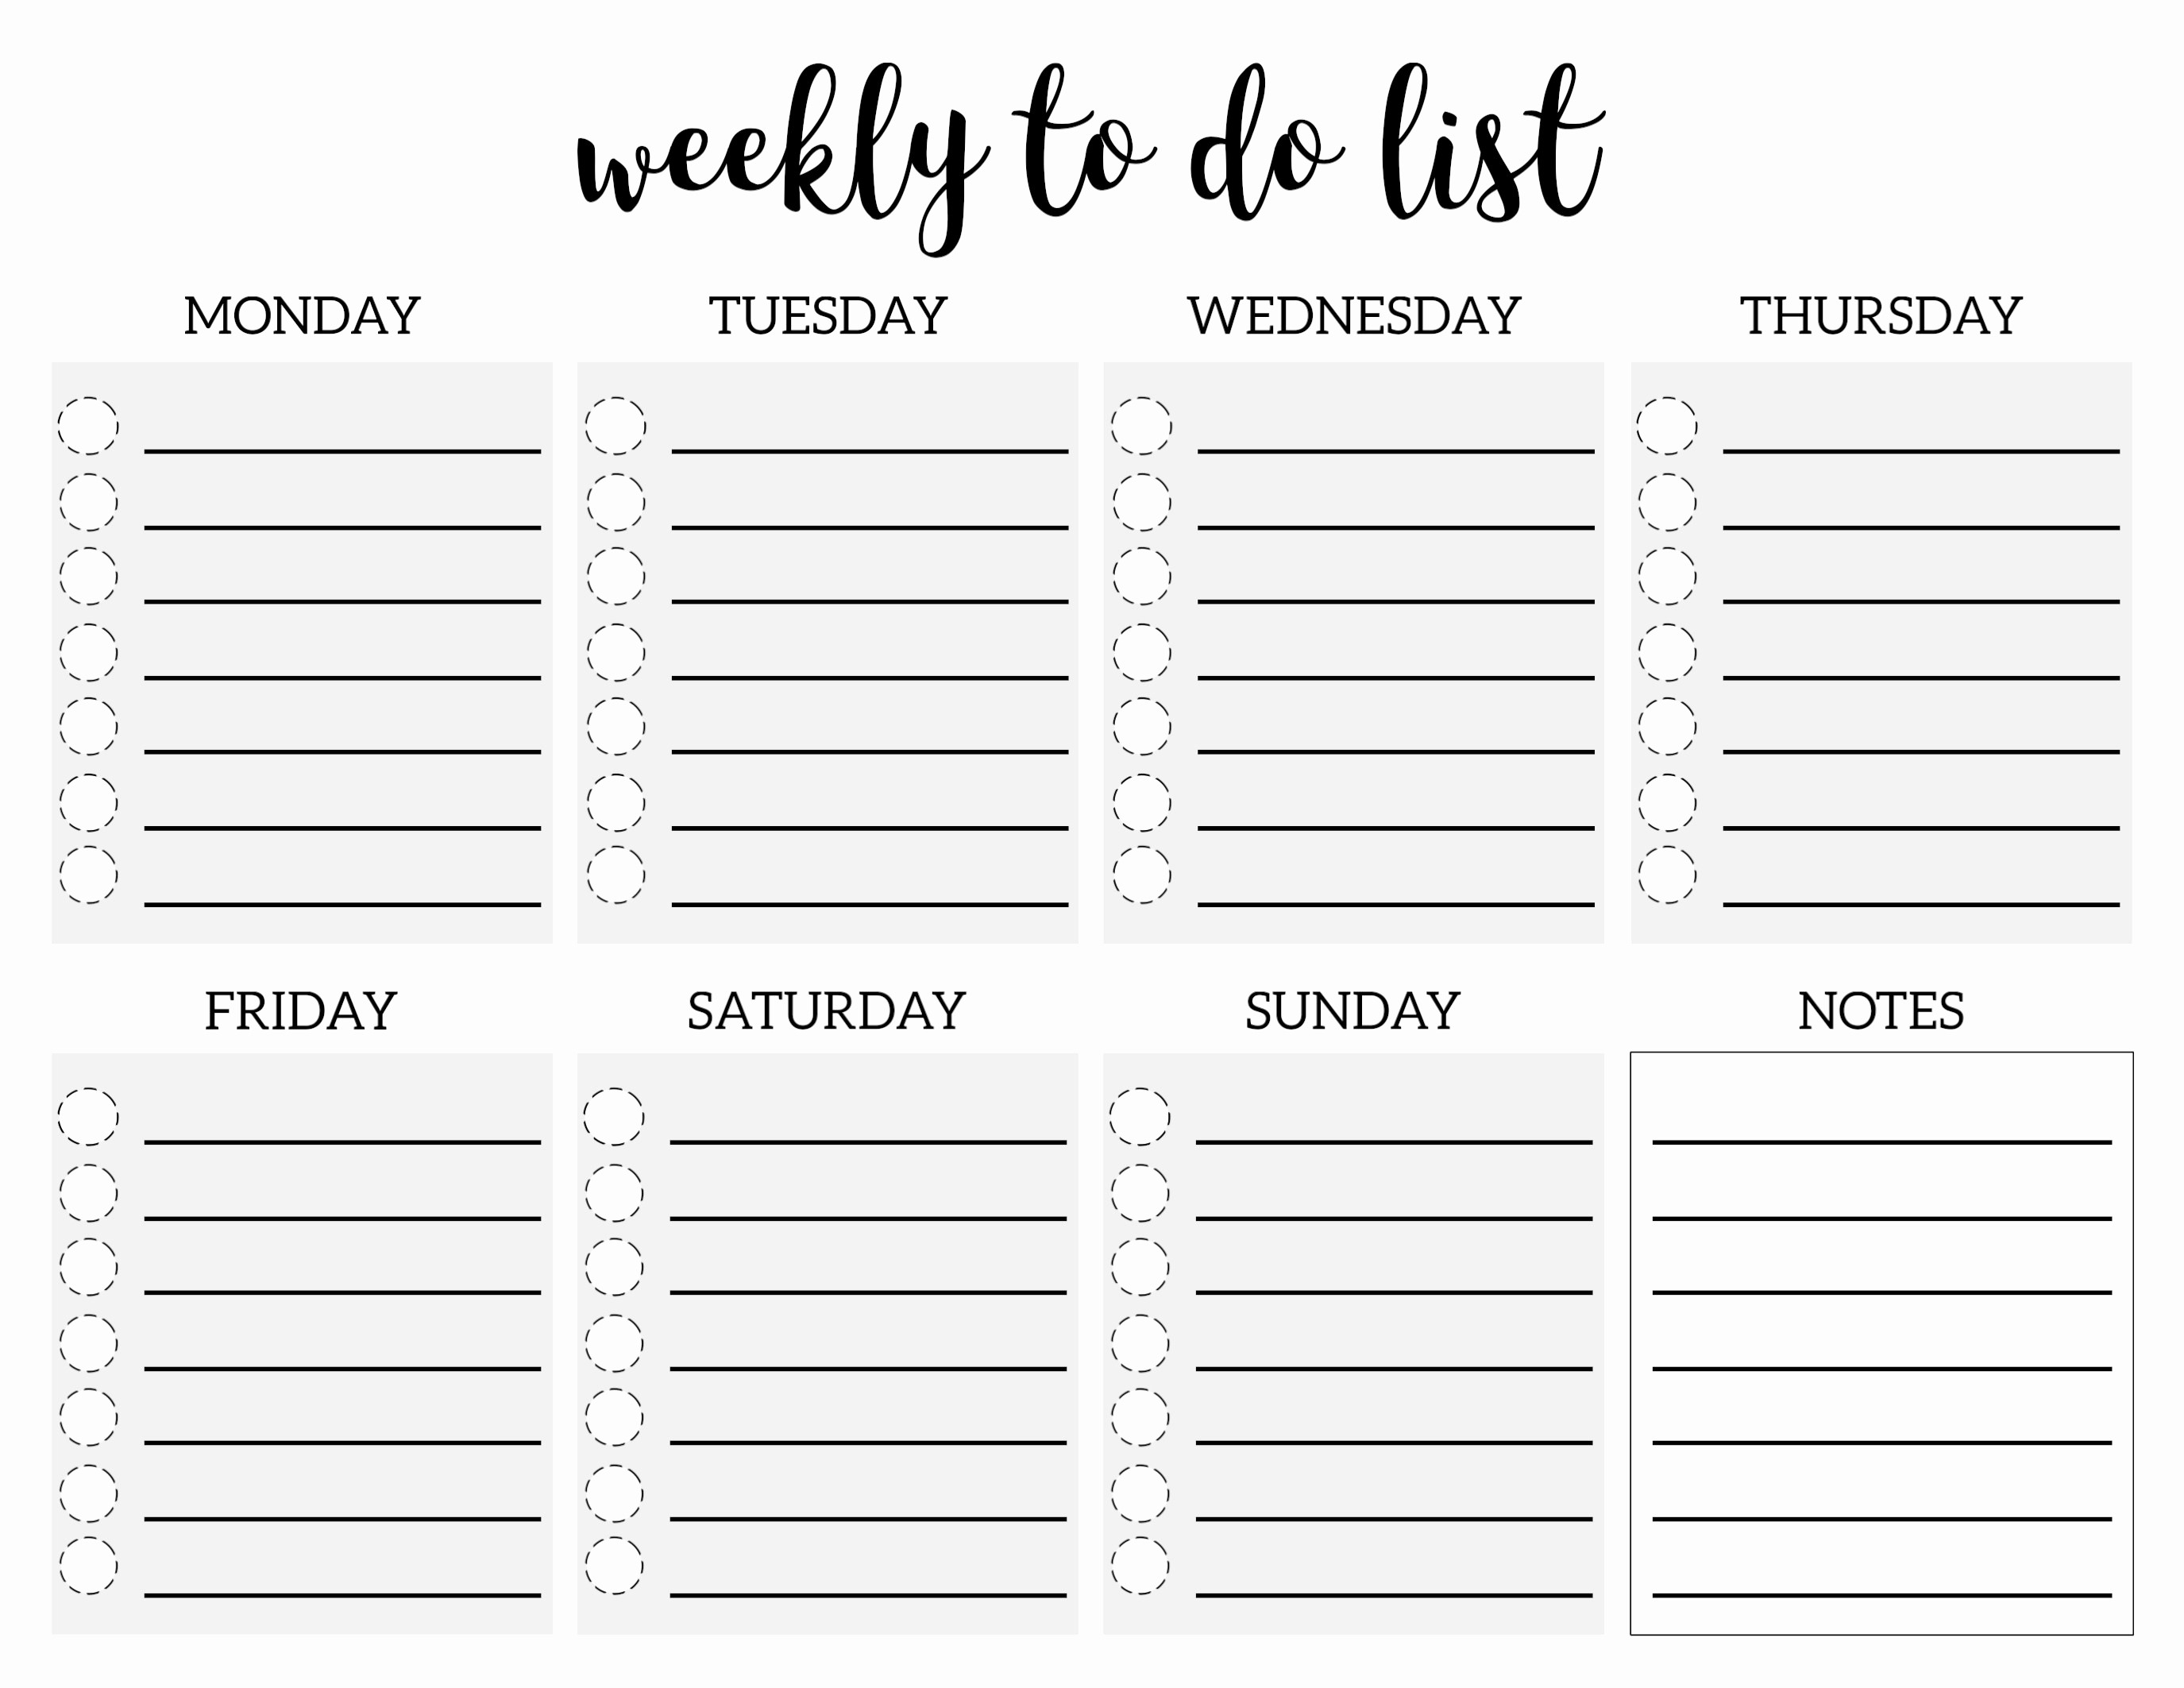 To Do List organizer Template Lovely Weekly to Do List Printable Checklist Template Paper